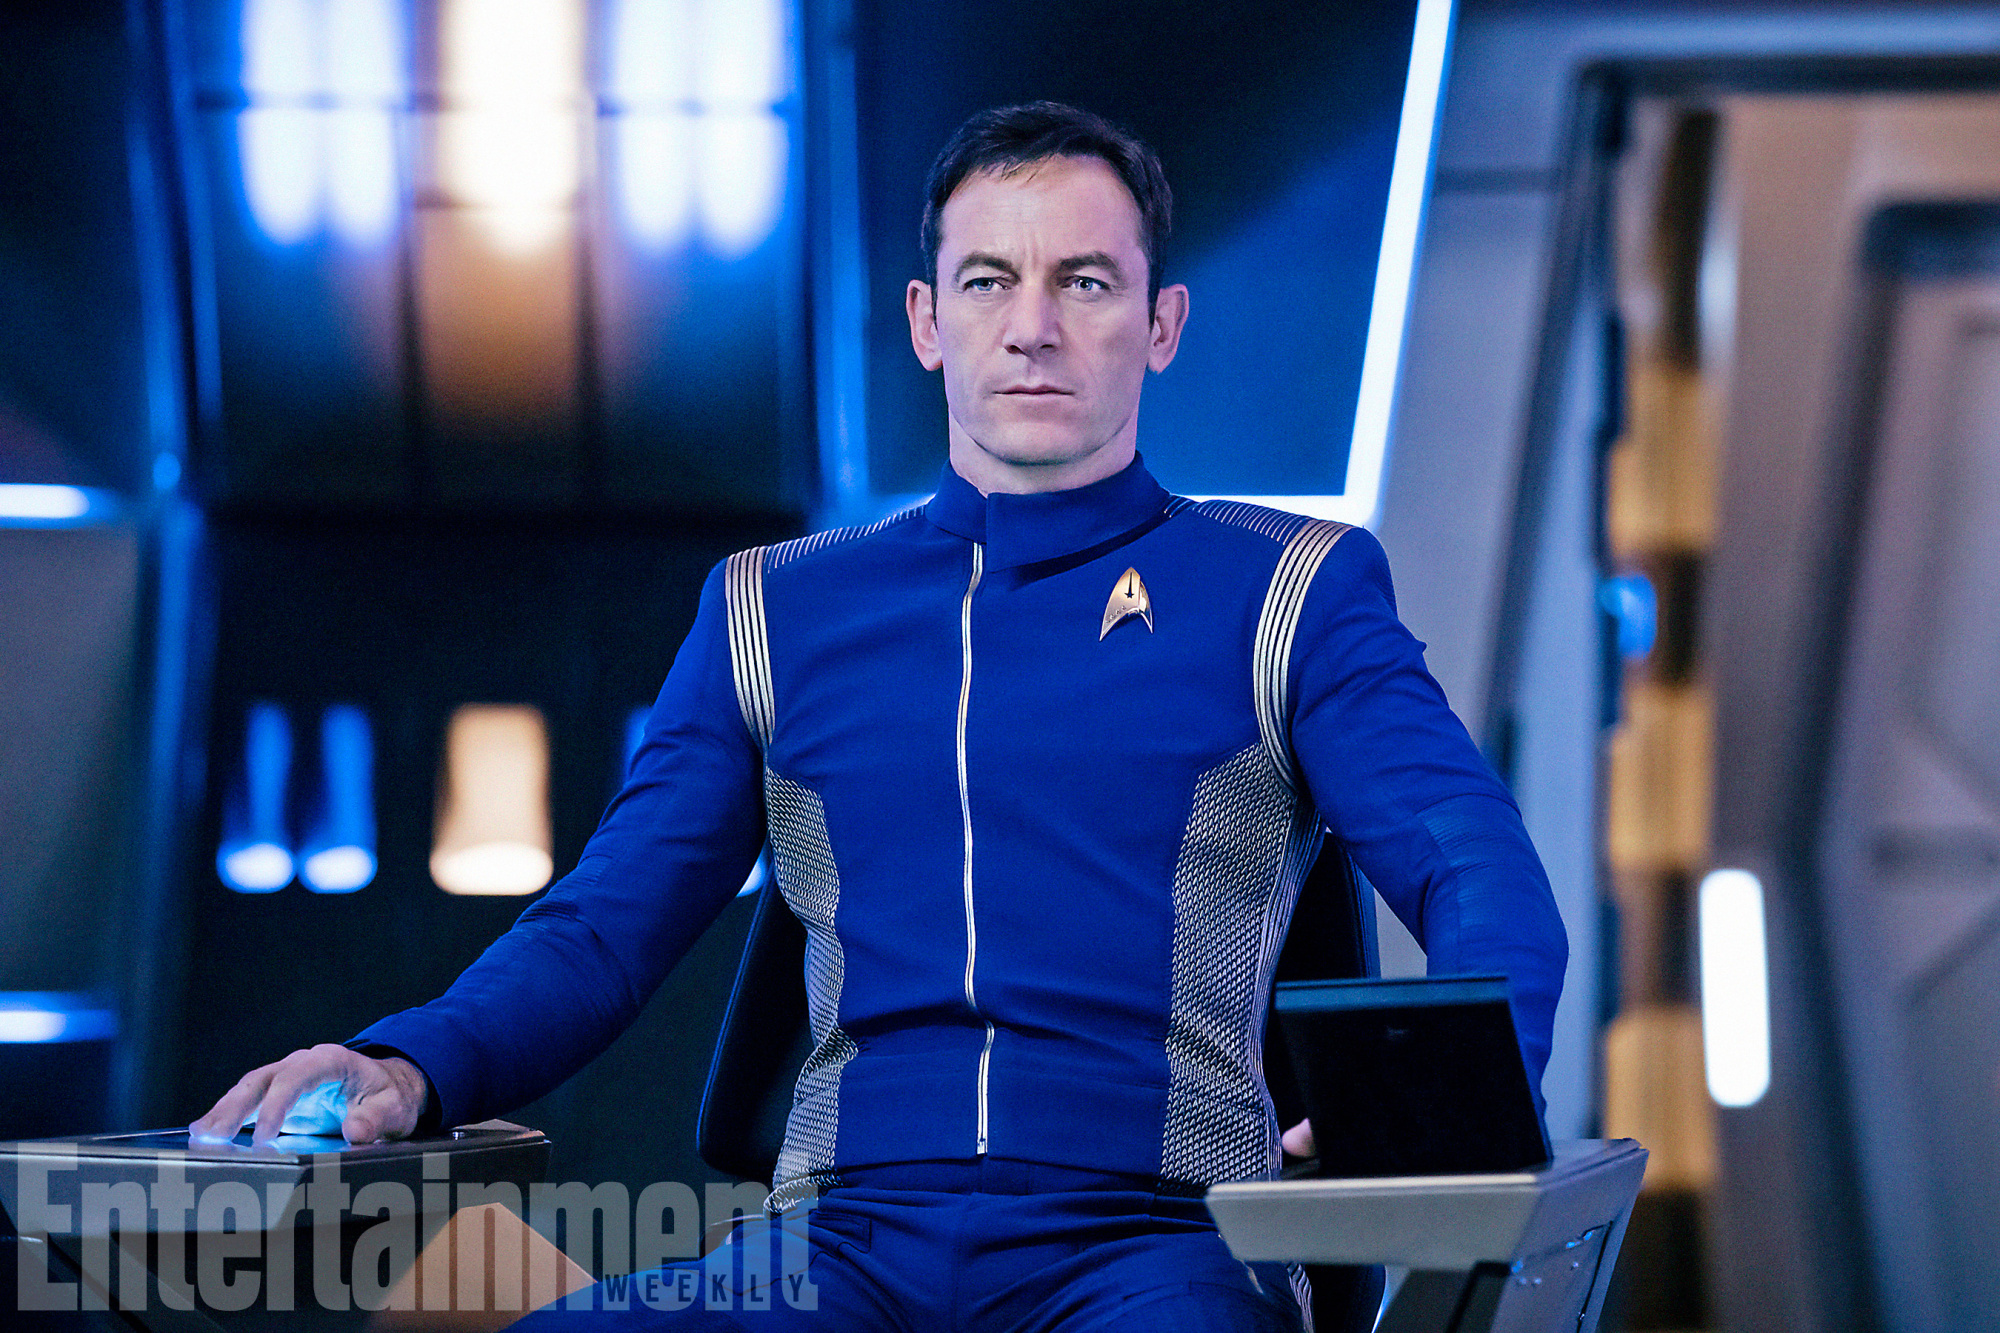 STAR TREK: DISCOVERY Pictured: Jason Isaacs as Captain Gabriel Lorca.